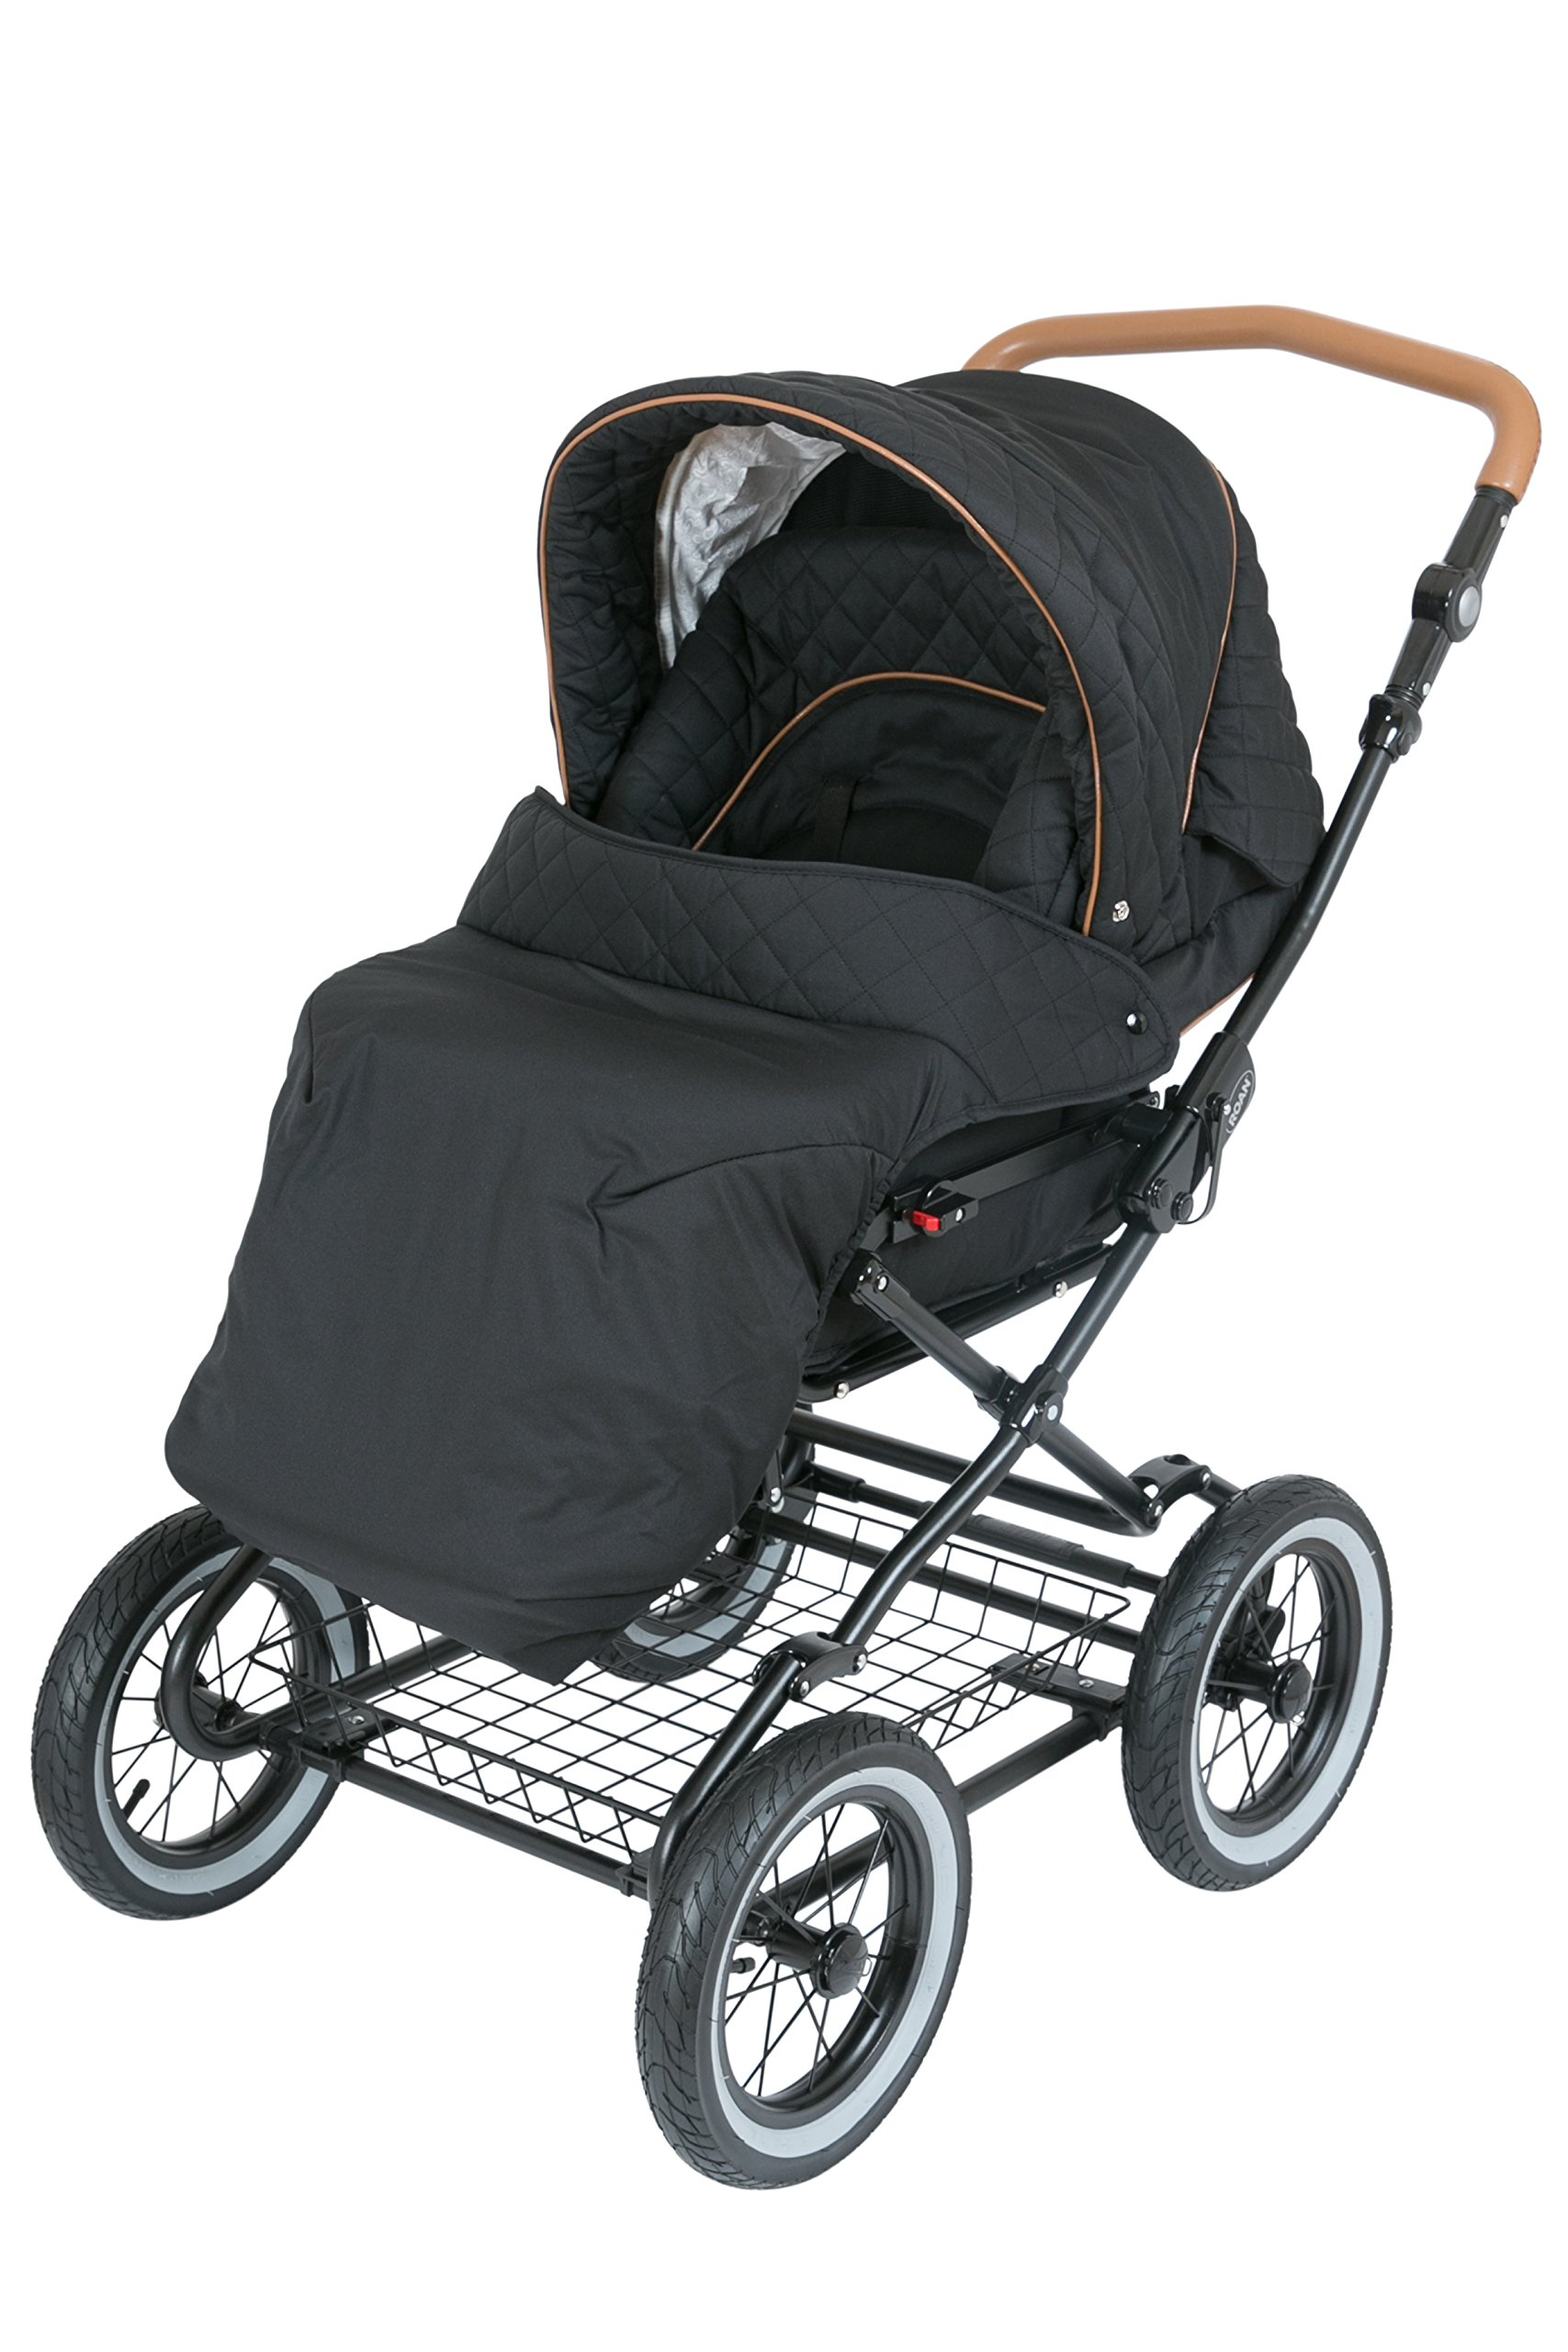 Luxury Roan Kortina 2-in-1 Pram Stroller Pushchair with Big Baby Bassinet and Toddler Reclining Seat with Five Point Safety System UV Proof Canopy and Storage Basket for child up to 3 year (graphite) by ROAN (Image #5)